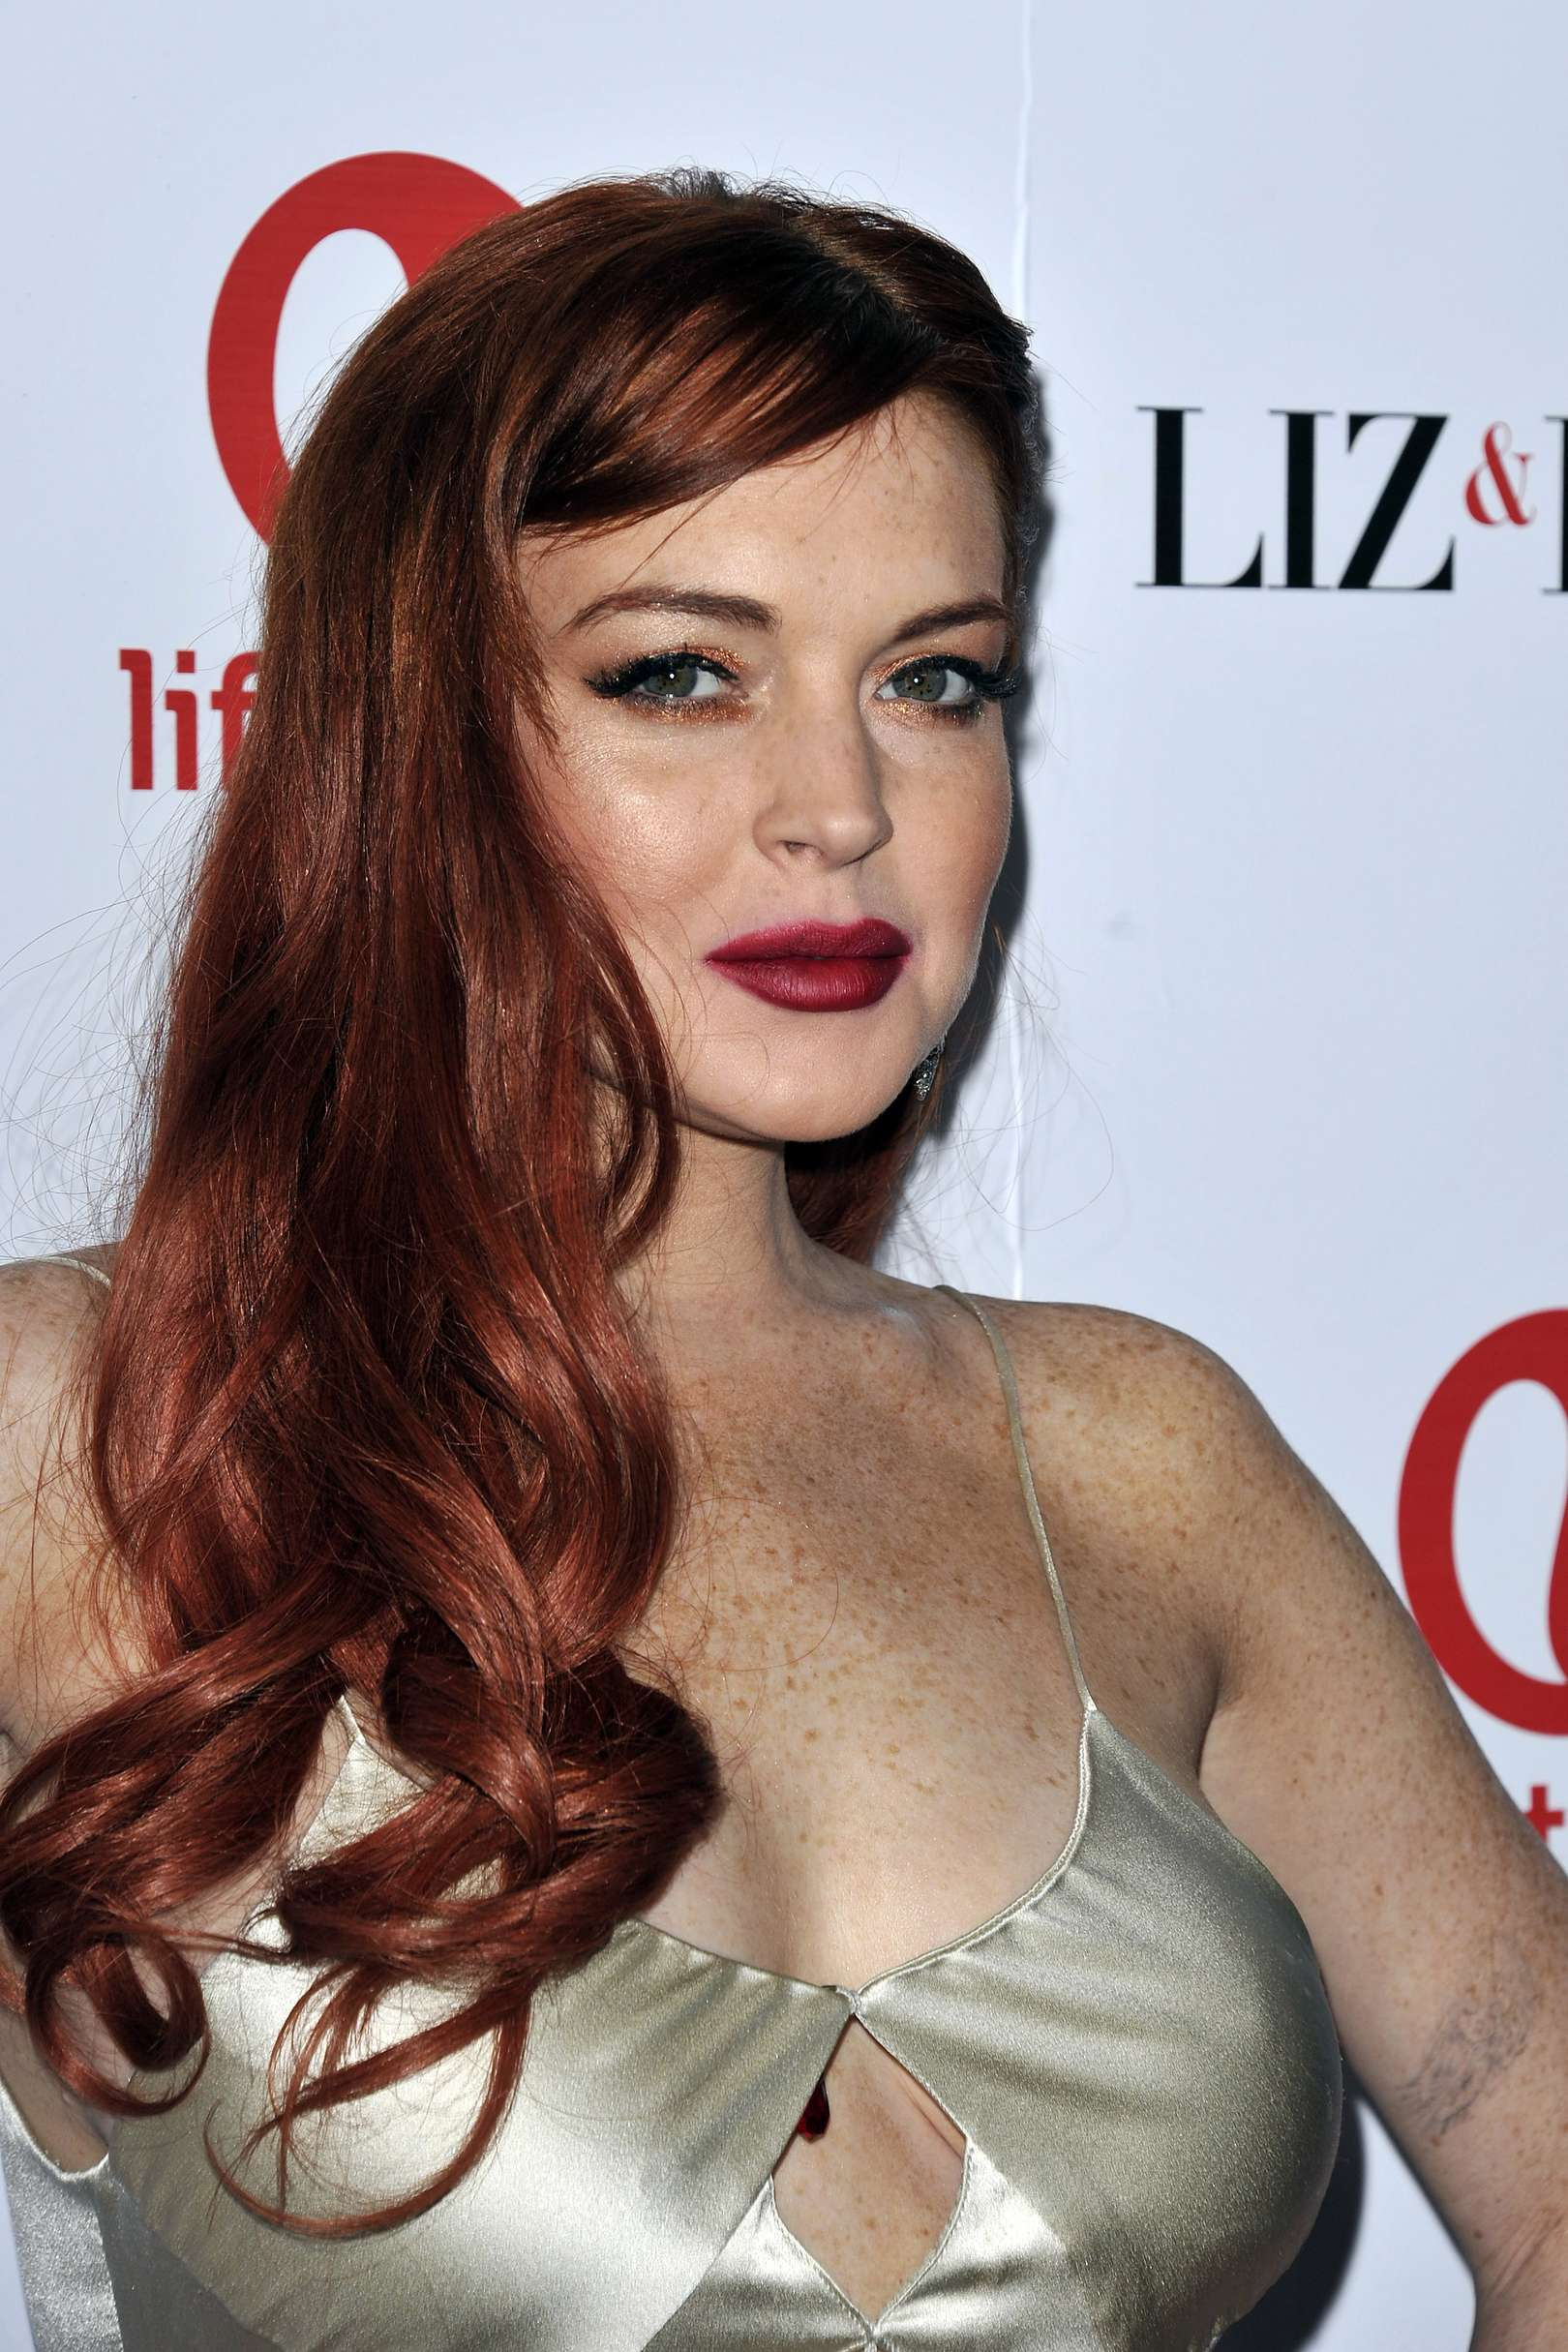 Lindsay Lohan at the premiere of 'Liz &amp; Dick'